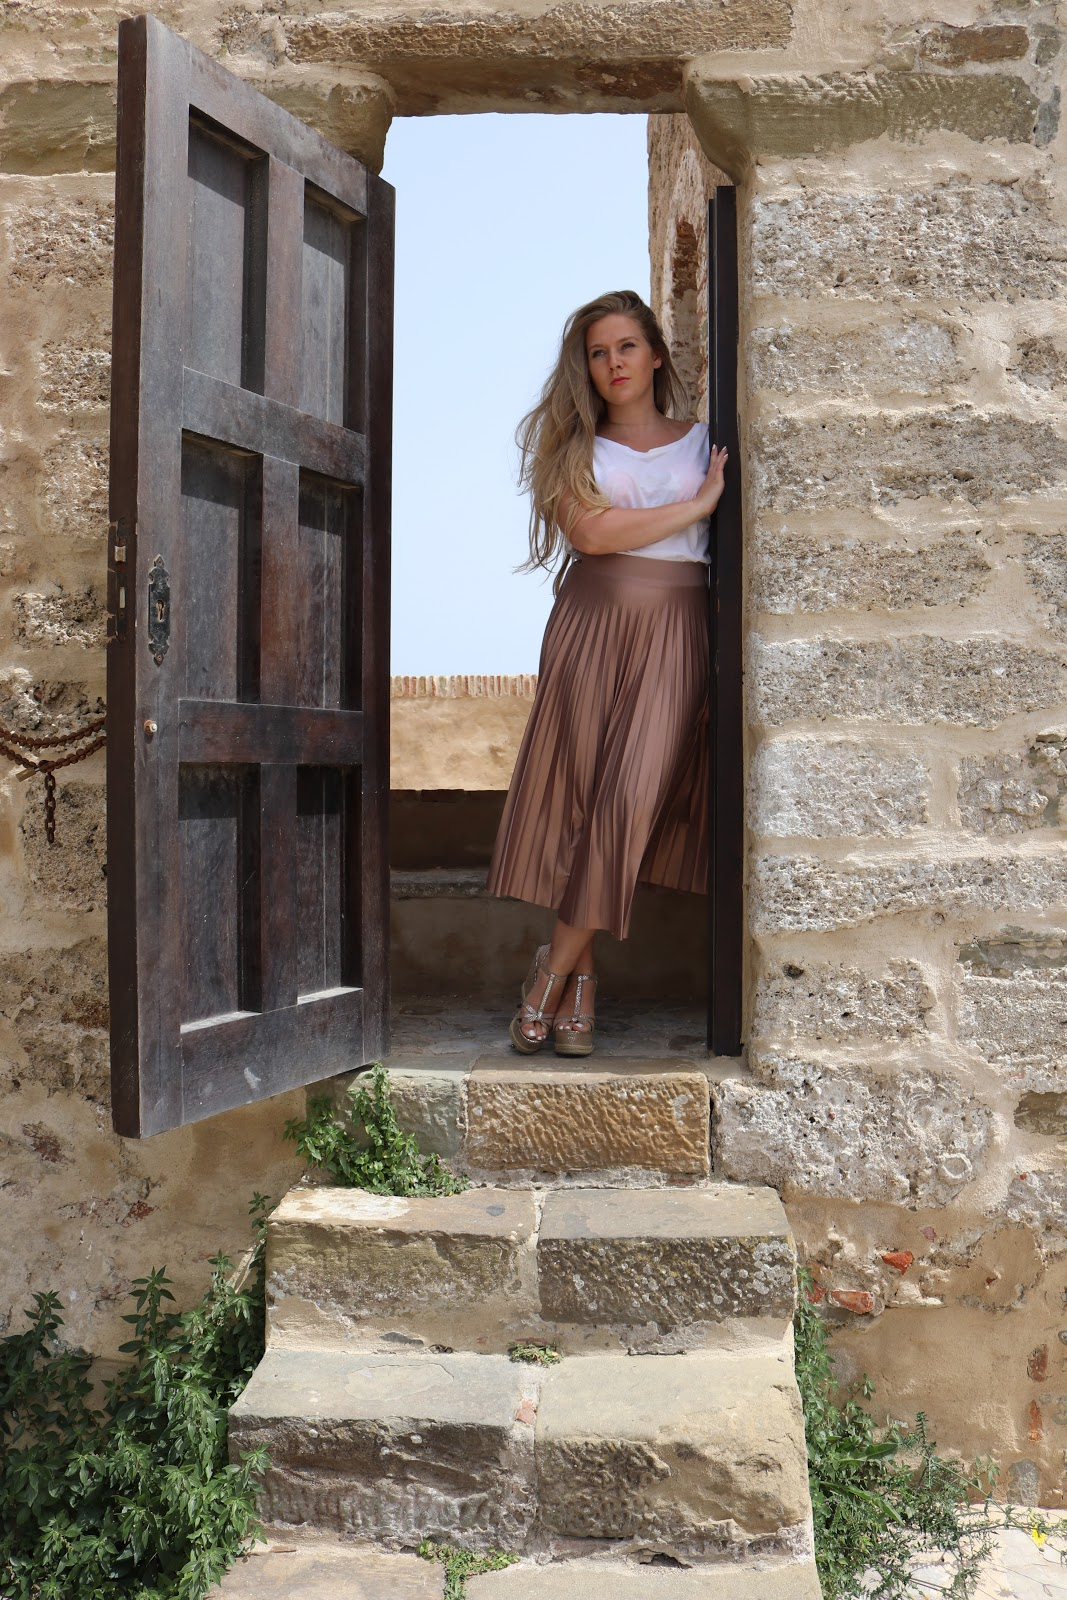 Blonde girl wearing metallic skirt standing in a doorway in Tarifa, Spain